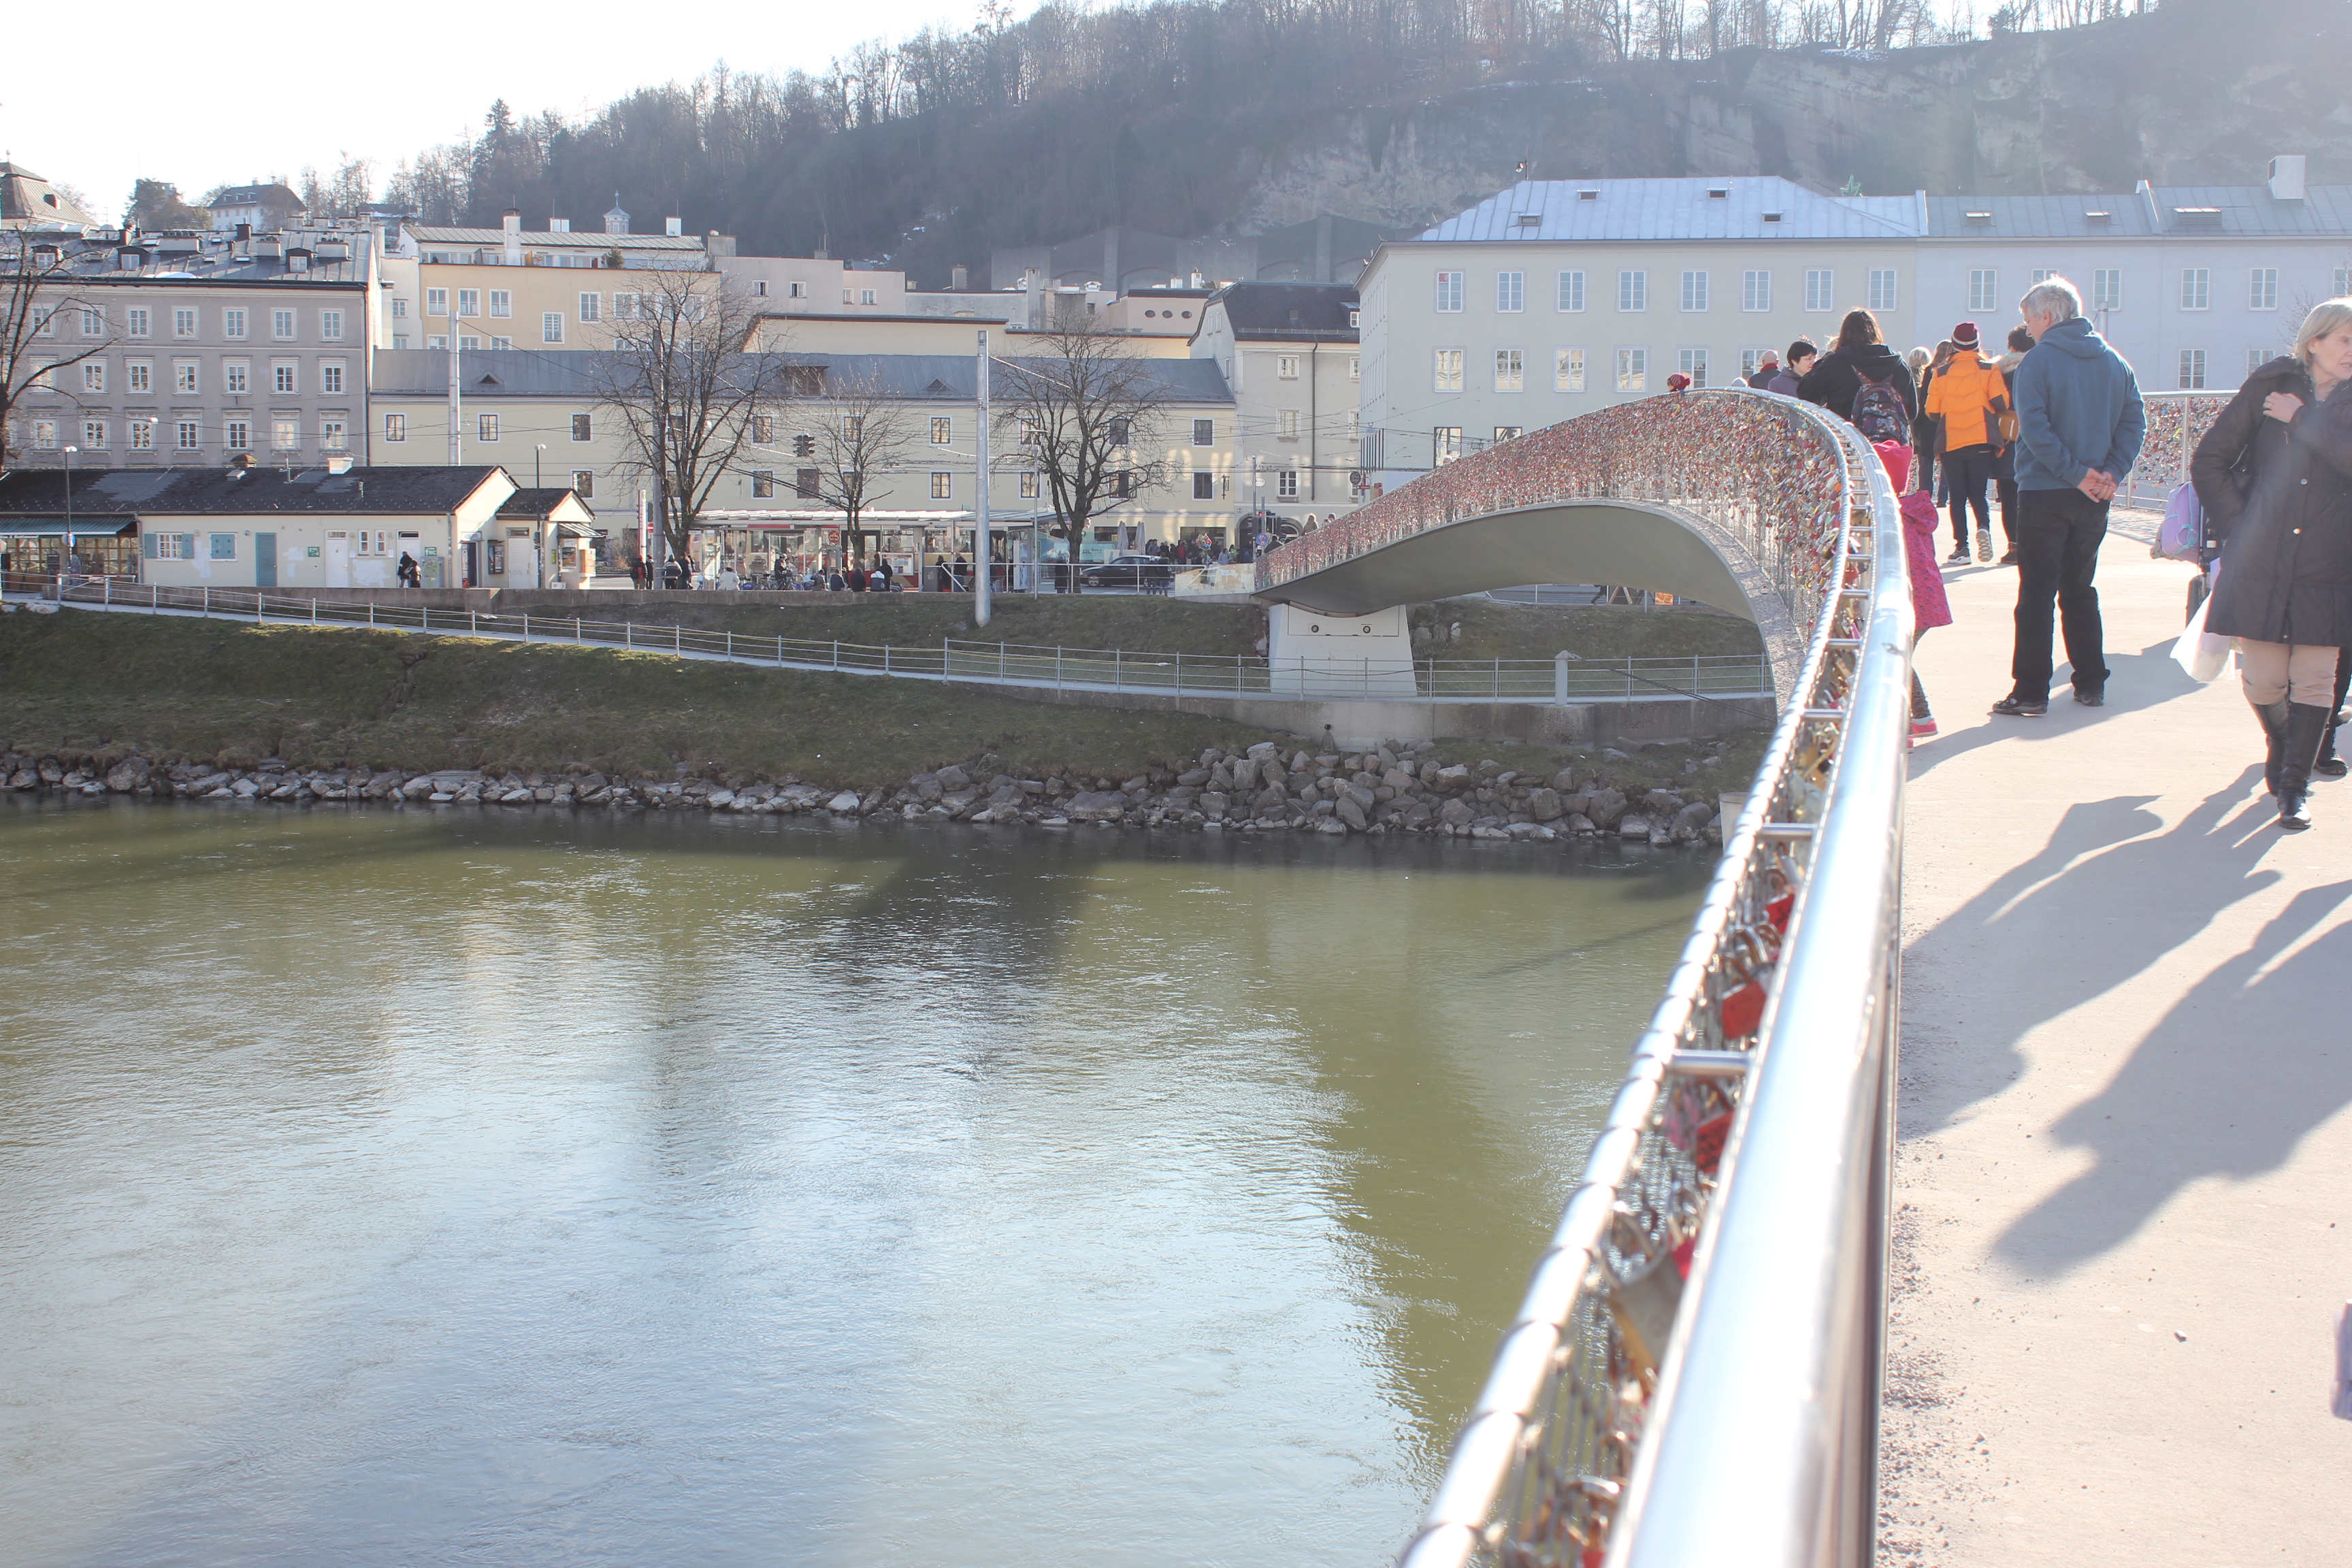 Makartsteg Bridge over the Salzach River in Salzburg, Austria